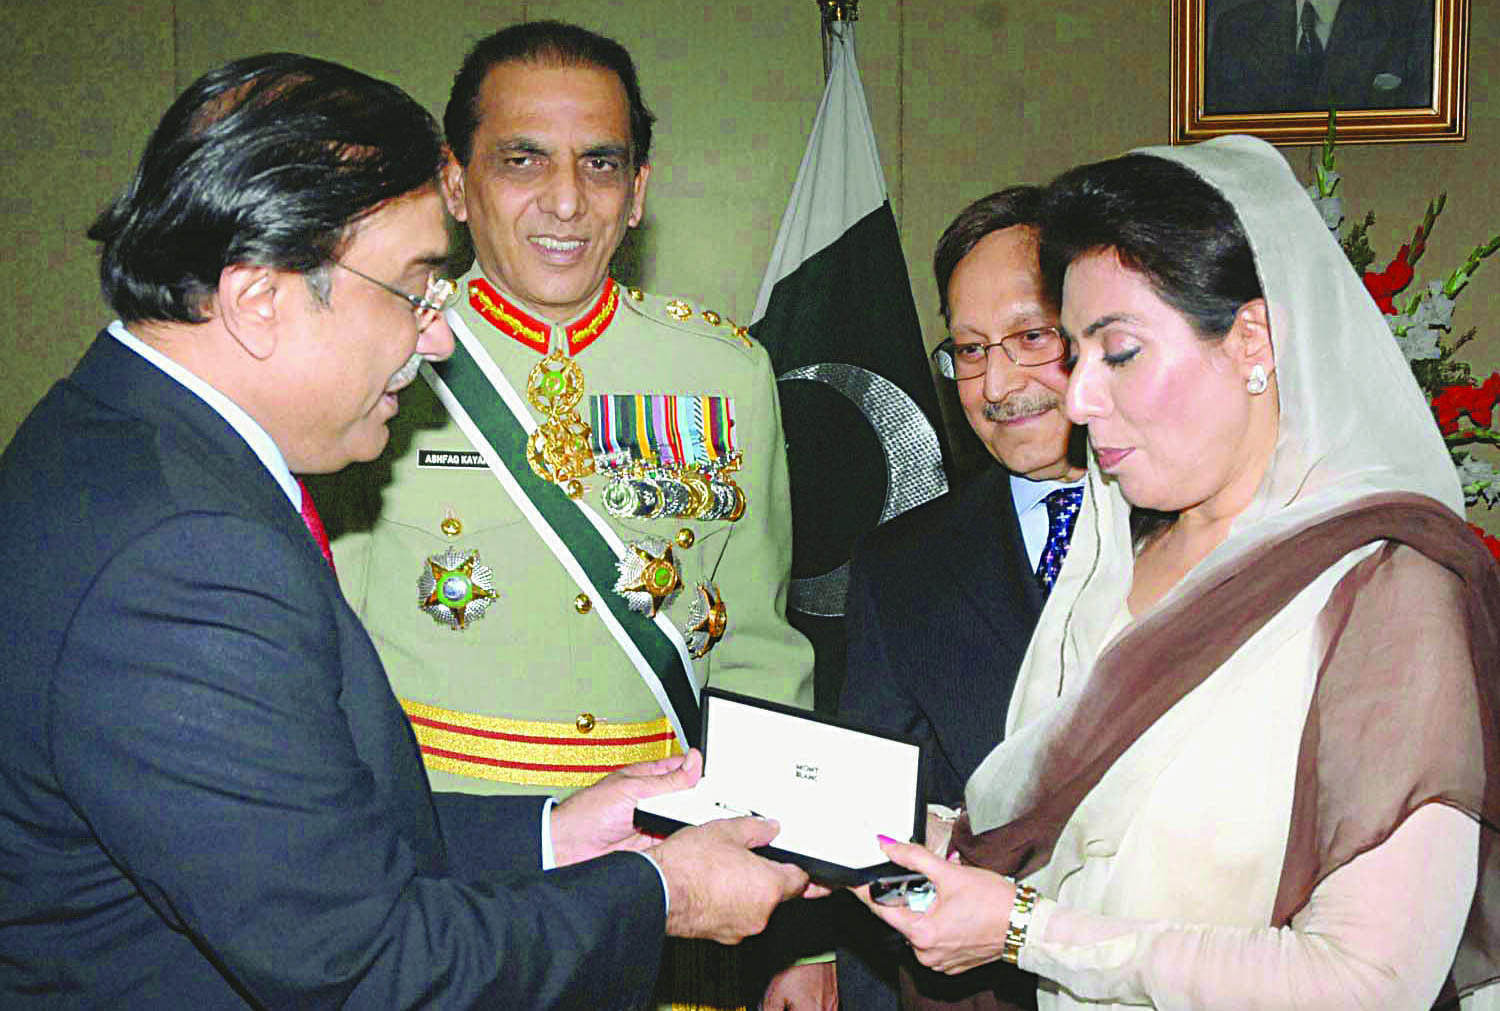 ONCE in office, Asif Zardari surprised many with his calm politics. He is seen here receiving a pen from National Assembly speaker Fehmida Mirza and Senate chairman Farooq H. Naek before signing on the dotted line to ratify a constitutional amendment. Army chief Ashfaq Parvez Kayani was also present on the occasion in a symbolic gesture of acknowledging parliamentary supremacy.